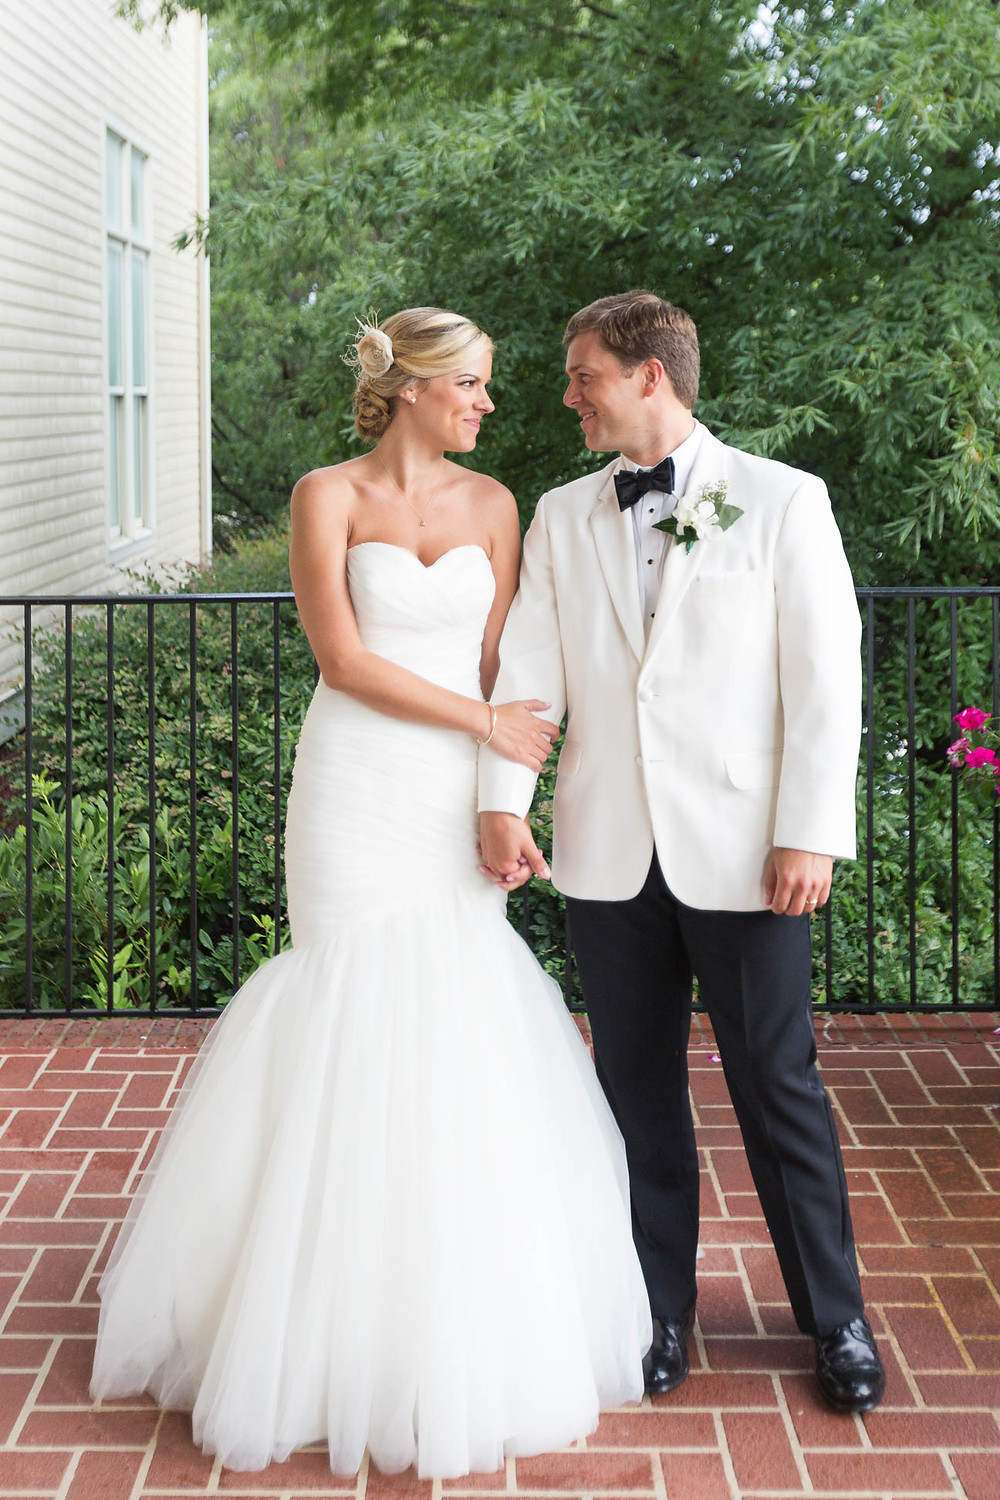 portrait of bride and groom on a porch after their wedding ceremony